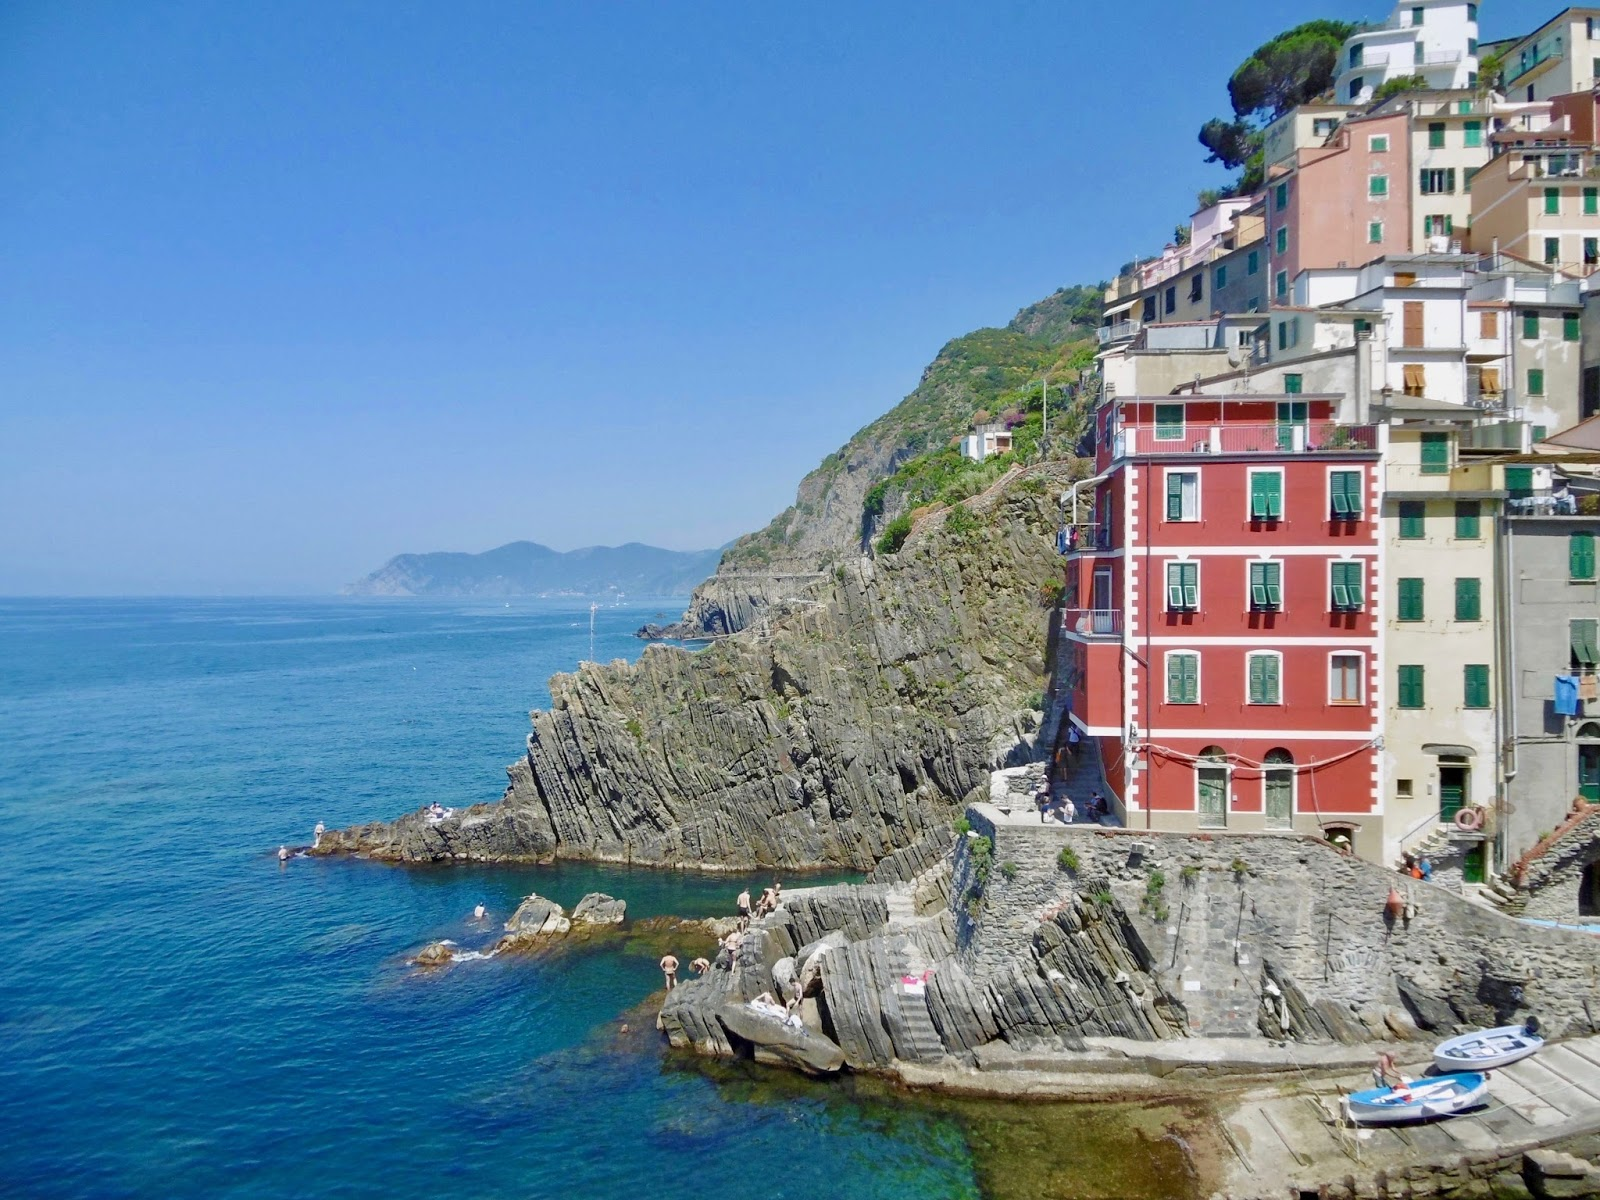 Cinque Terre buildings on the seaside, a guide to where to visit in Italy to Tour